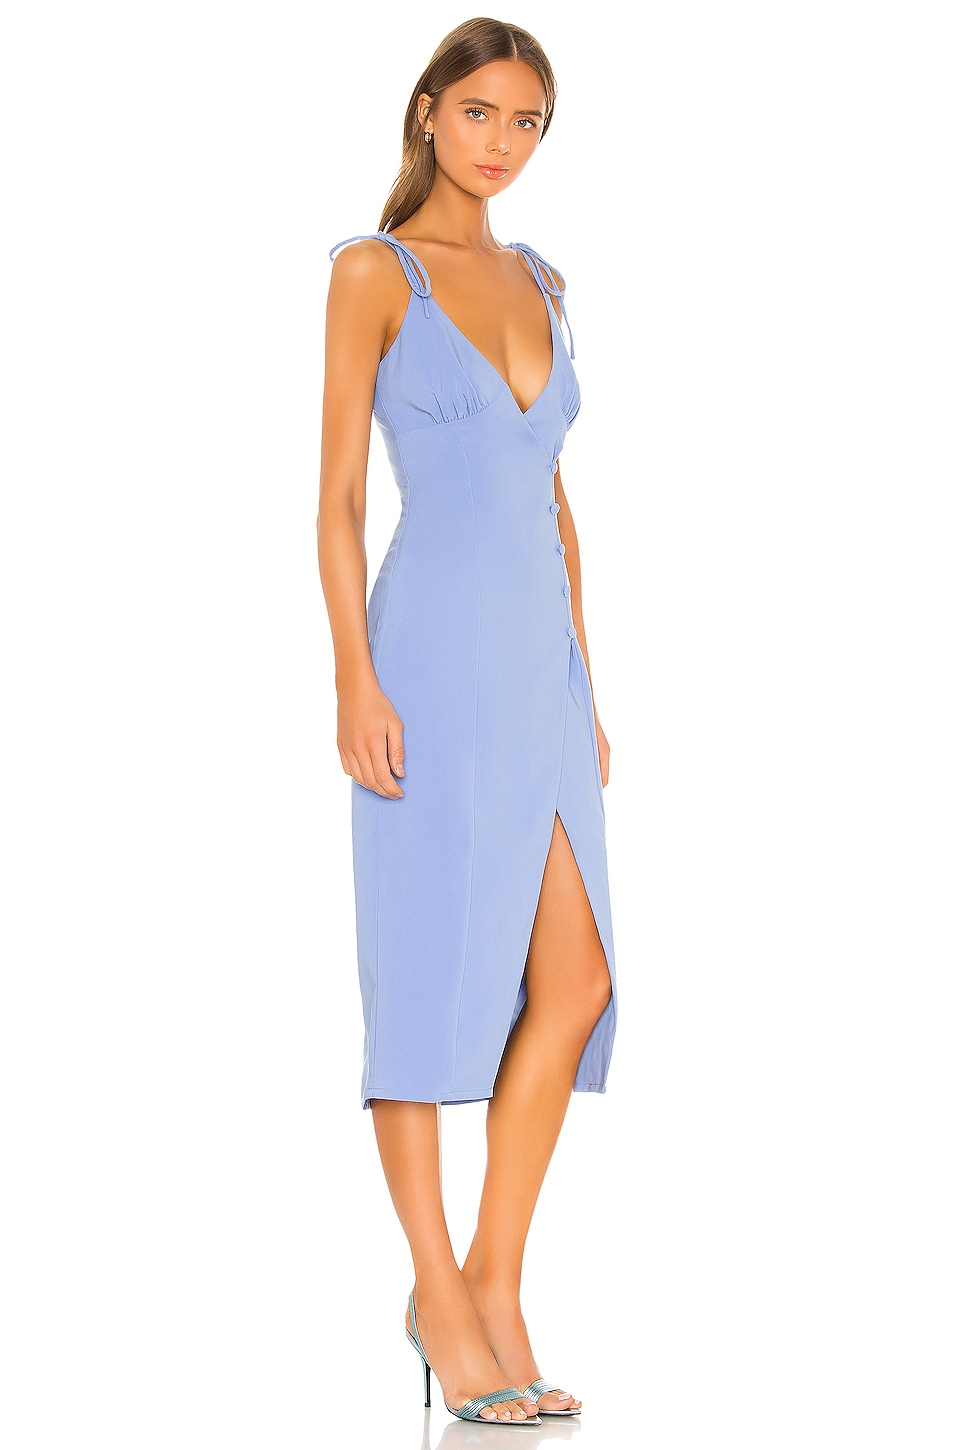 Aaliyah Midi Dress, view 2, click to view large image.